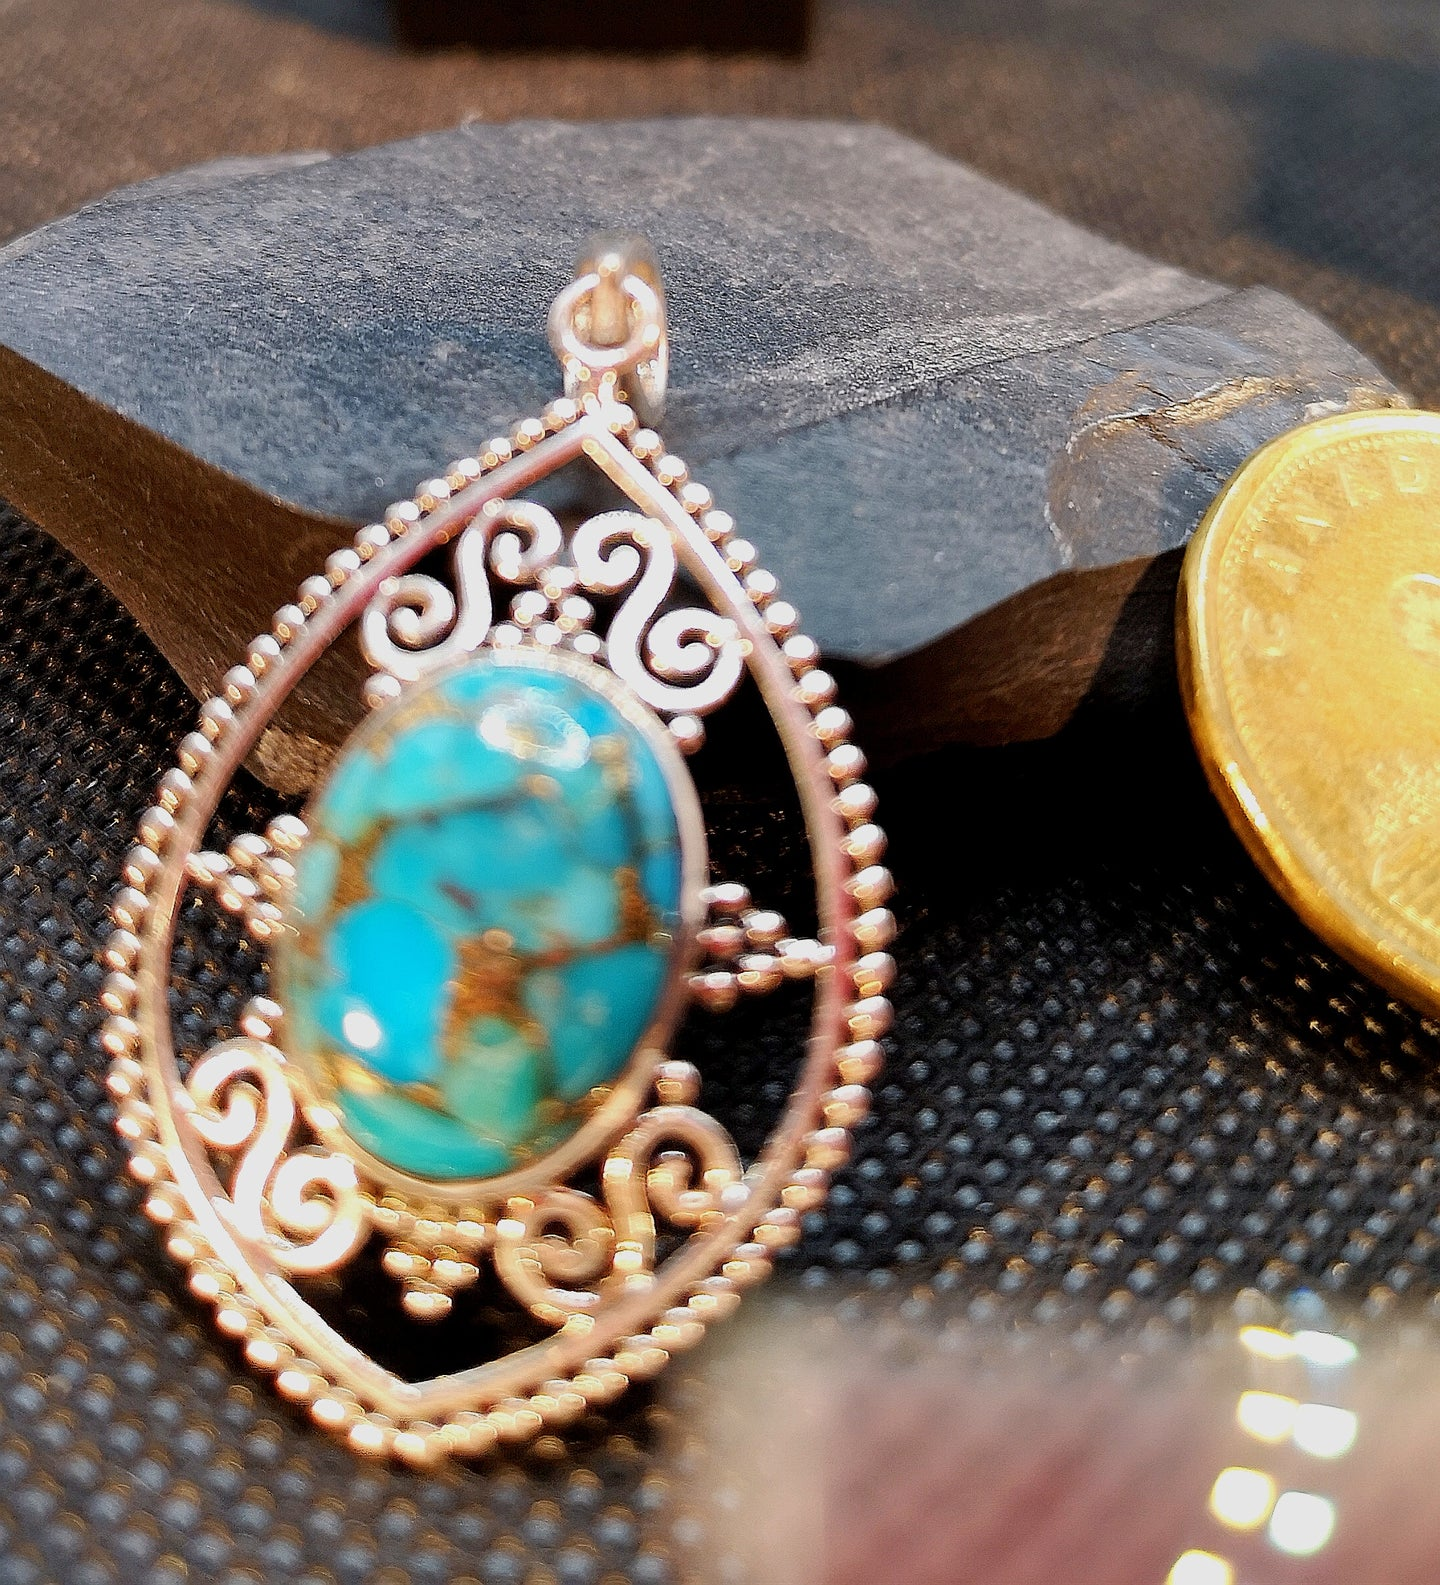 Genuine turquoise pendant in sterling silver